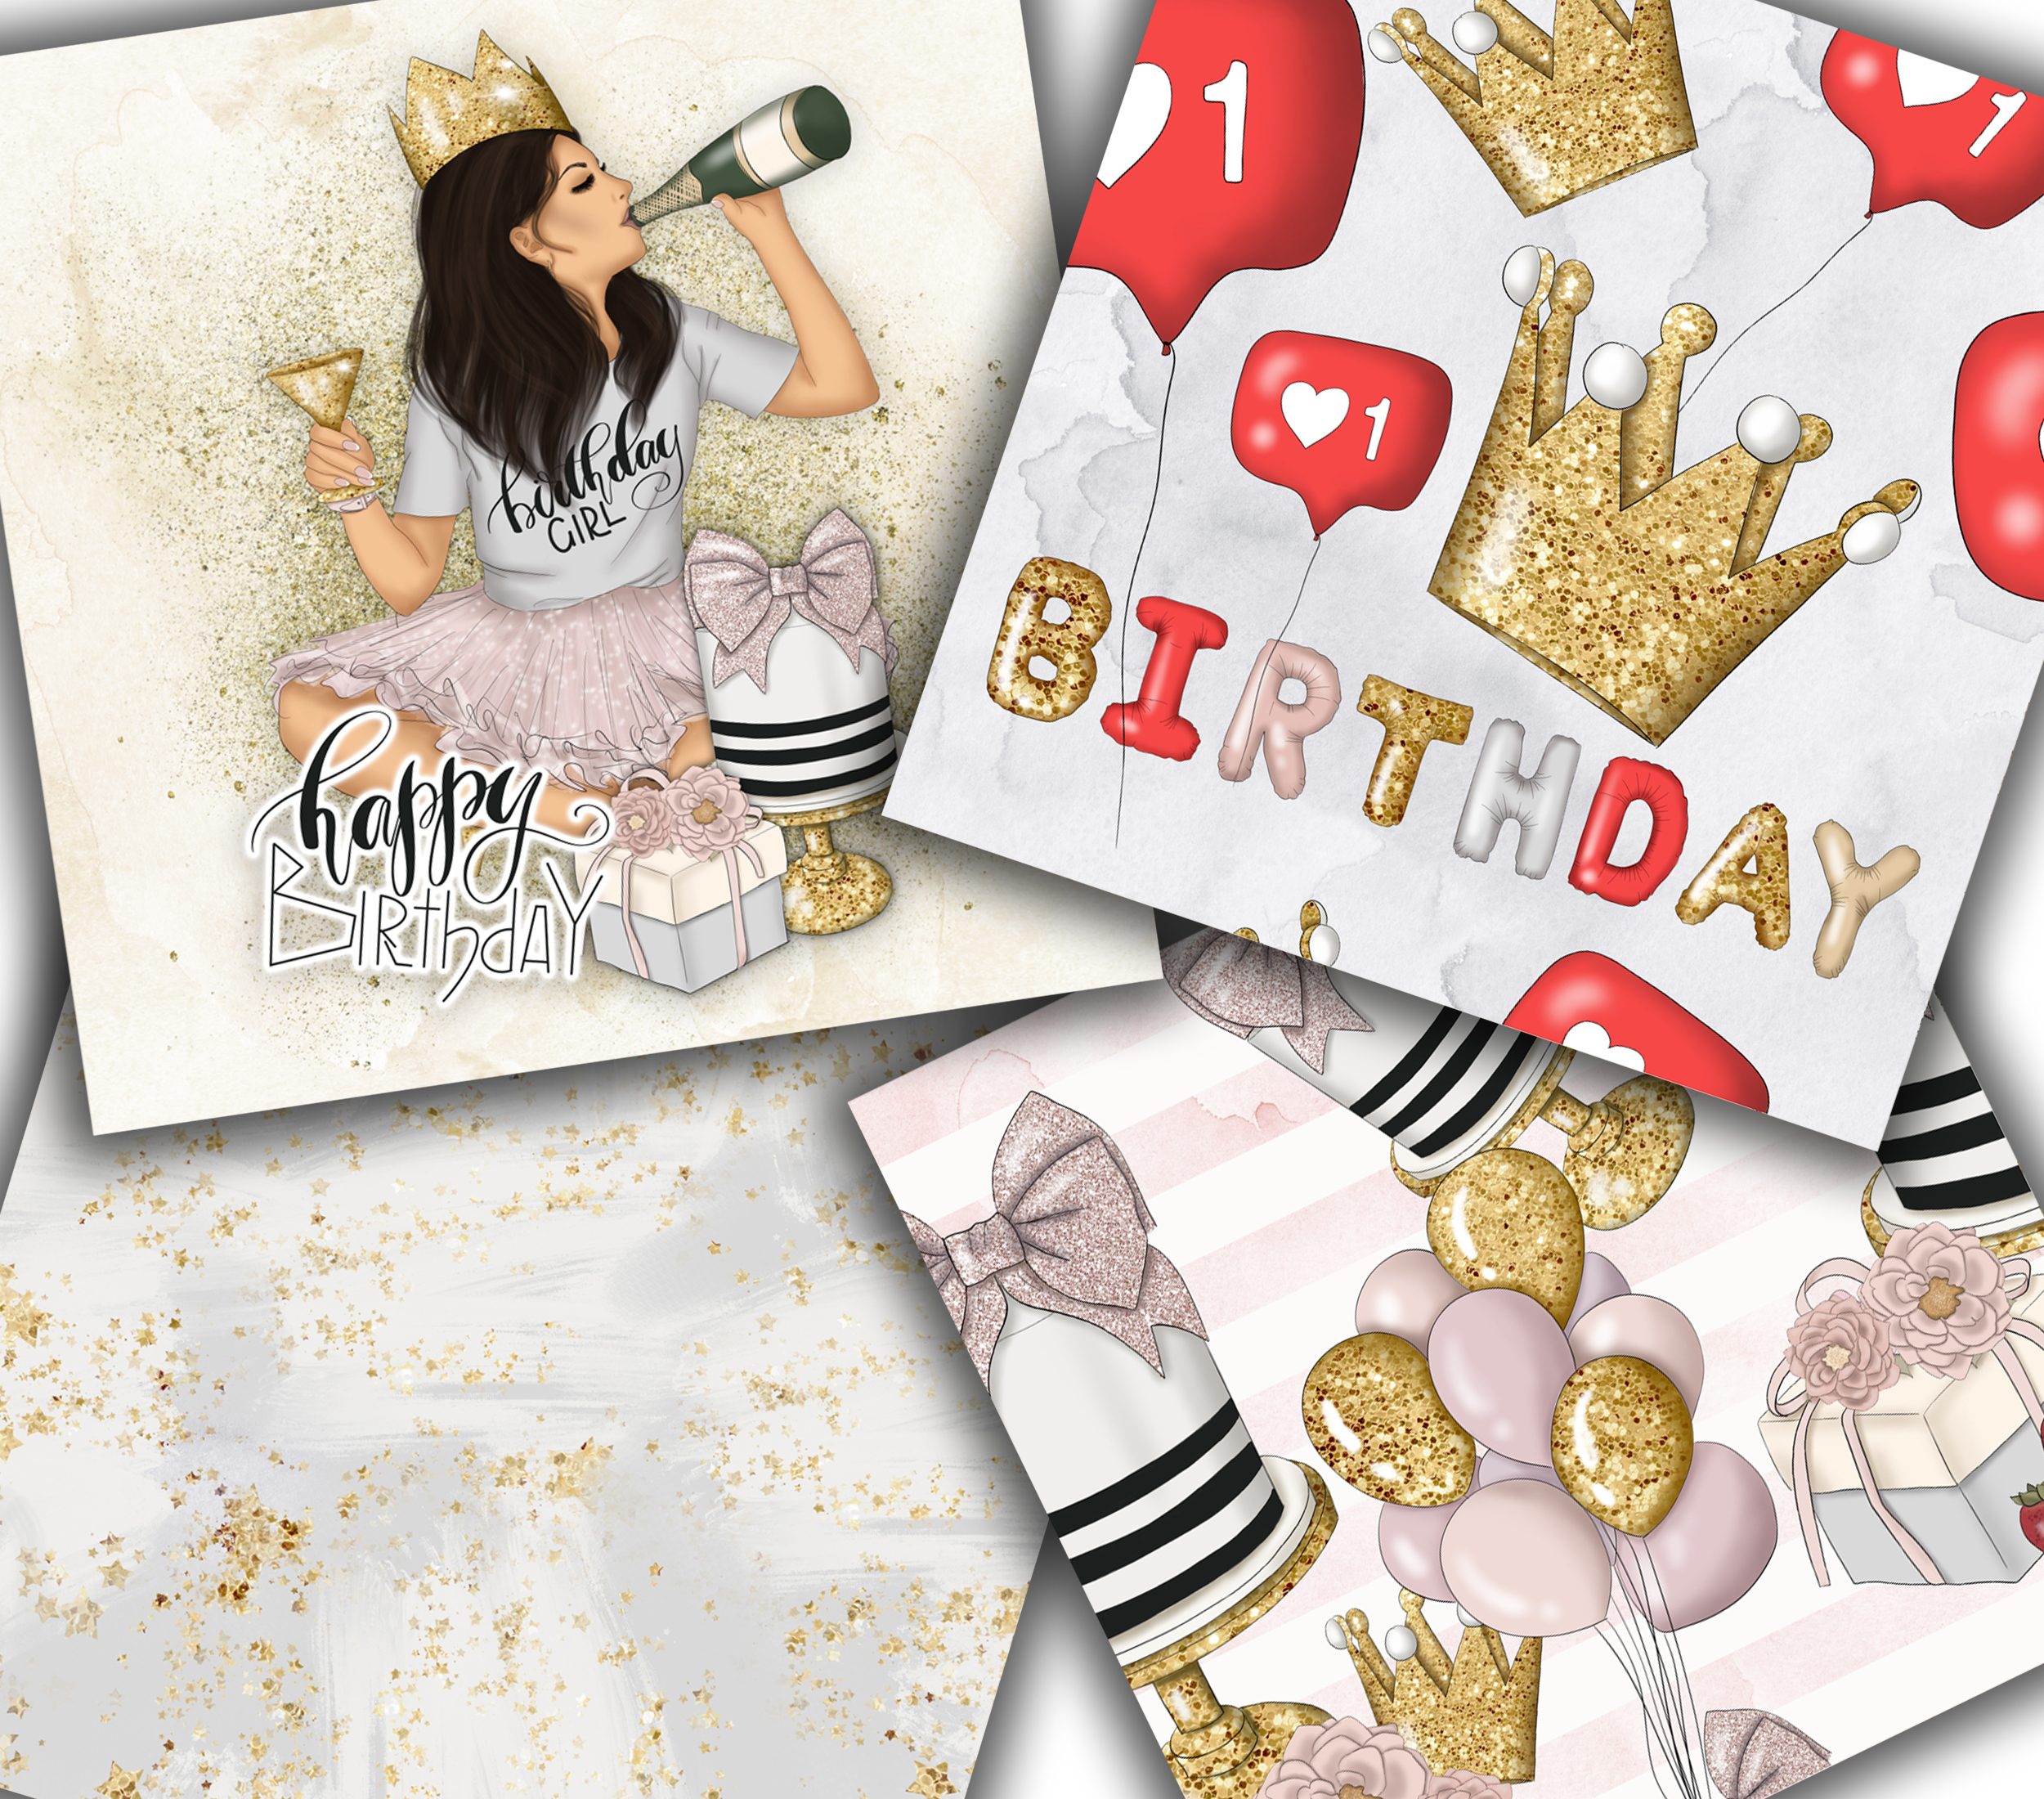 Best Day Ever Clipart Graphic Design example image 9